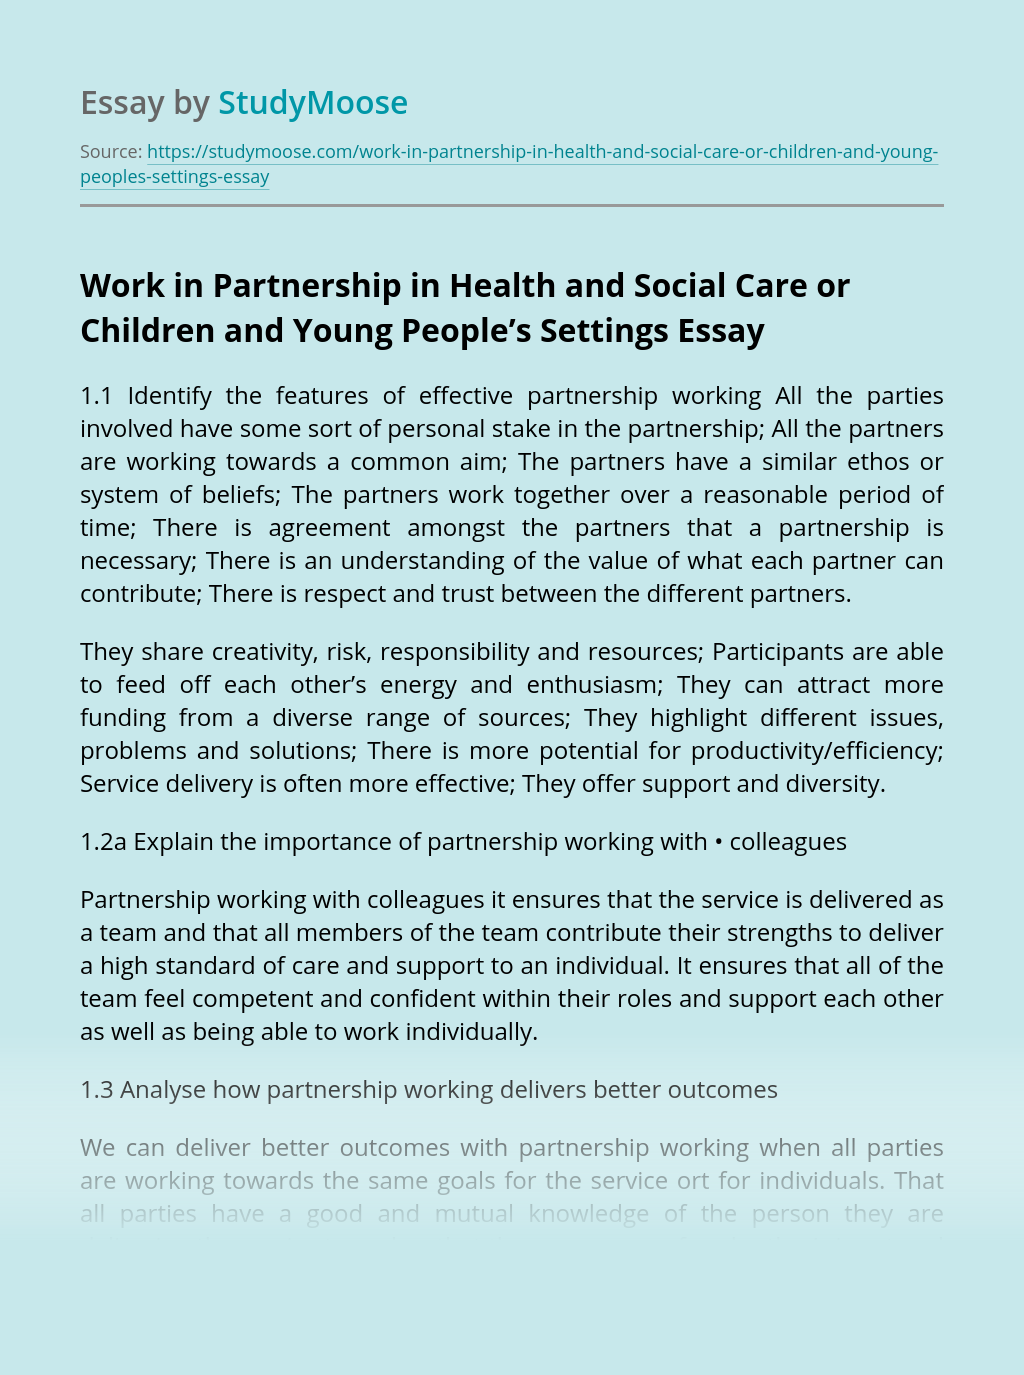 Work in Partnership in Health and Social Care or Children and Young People's Settings